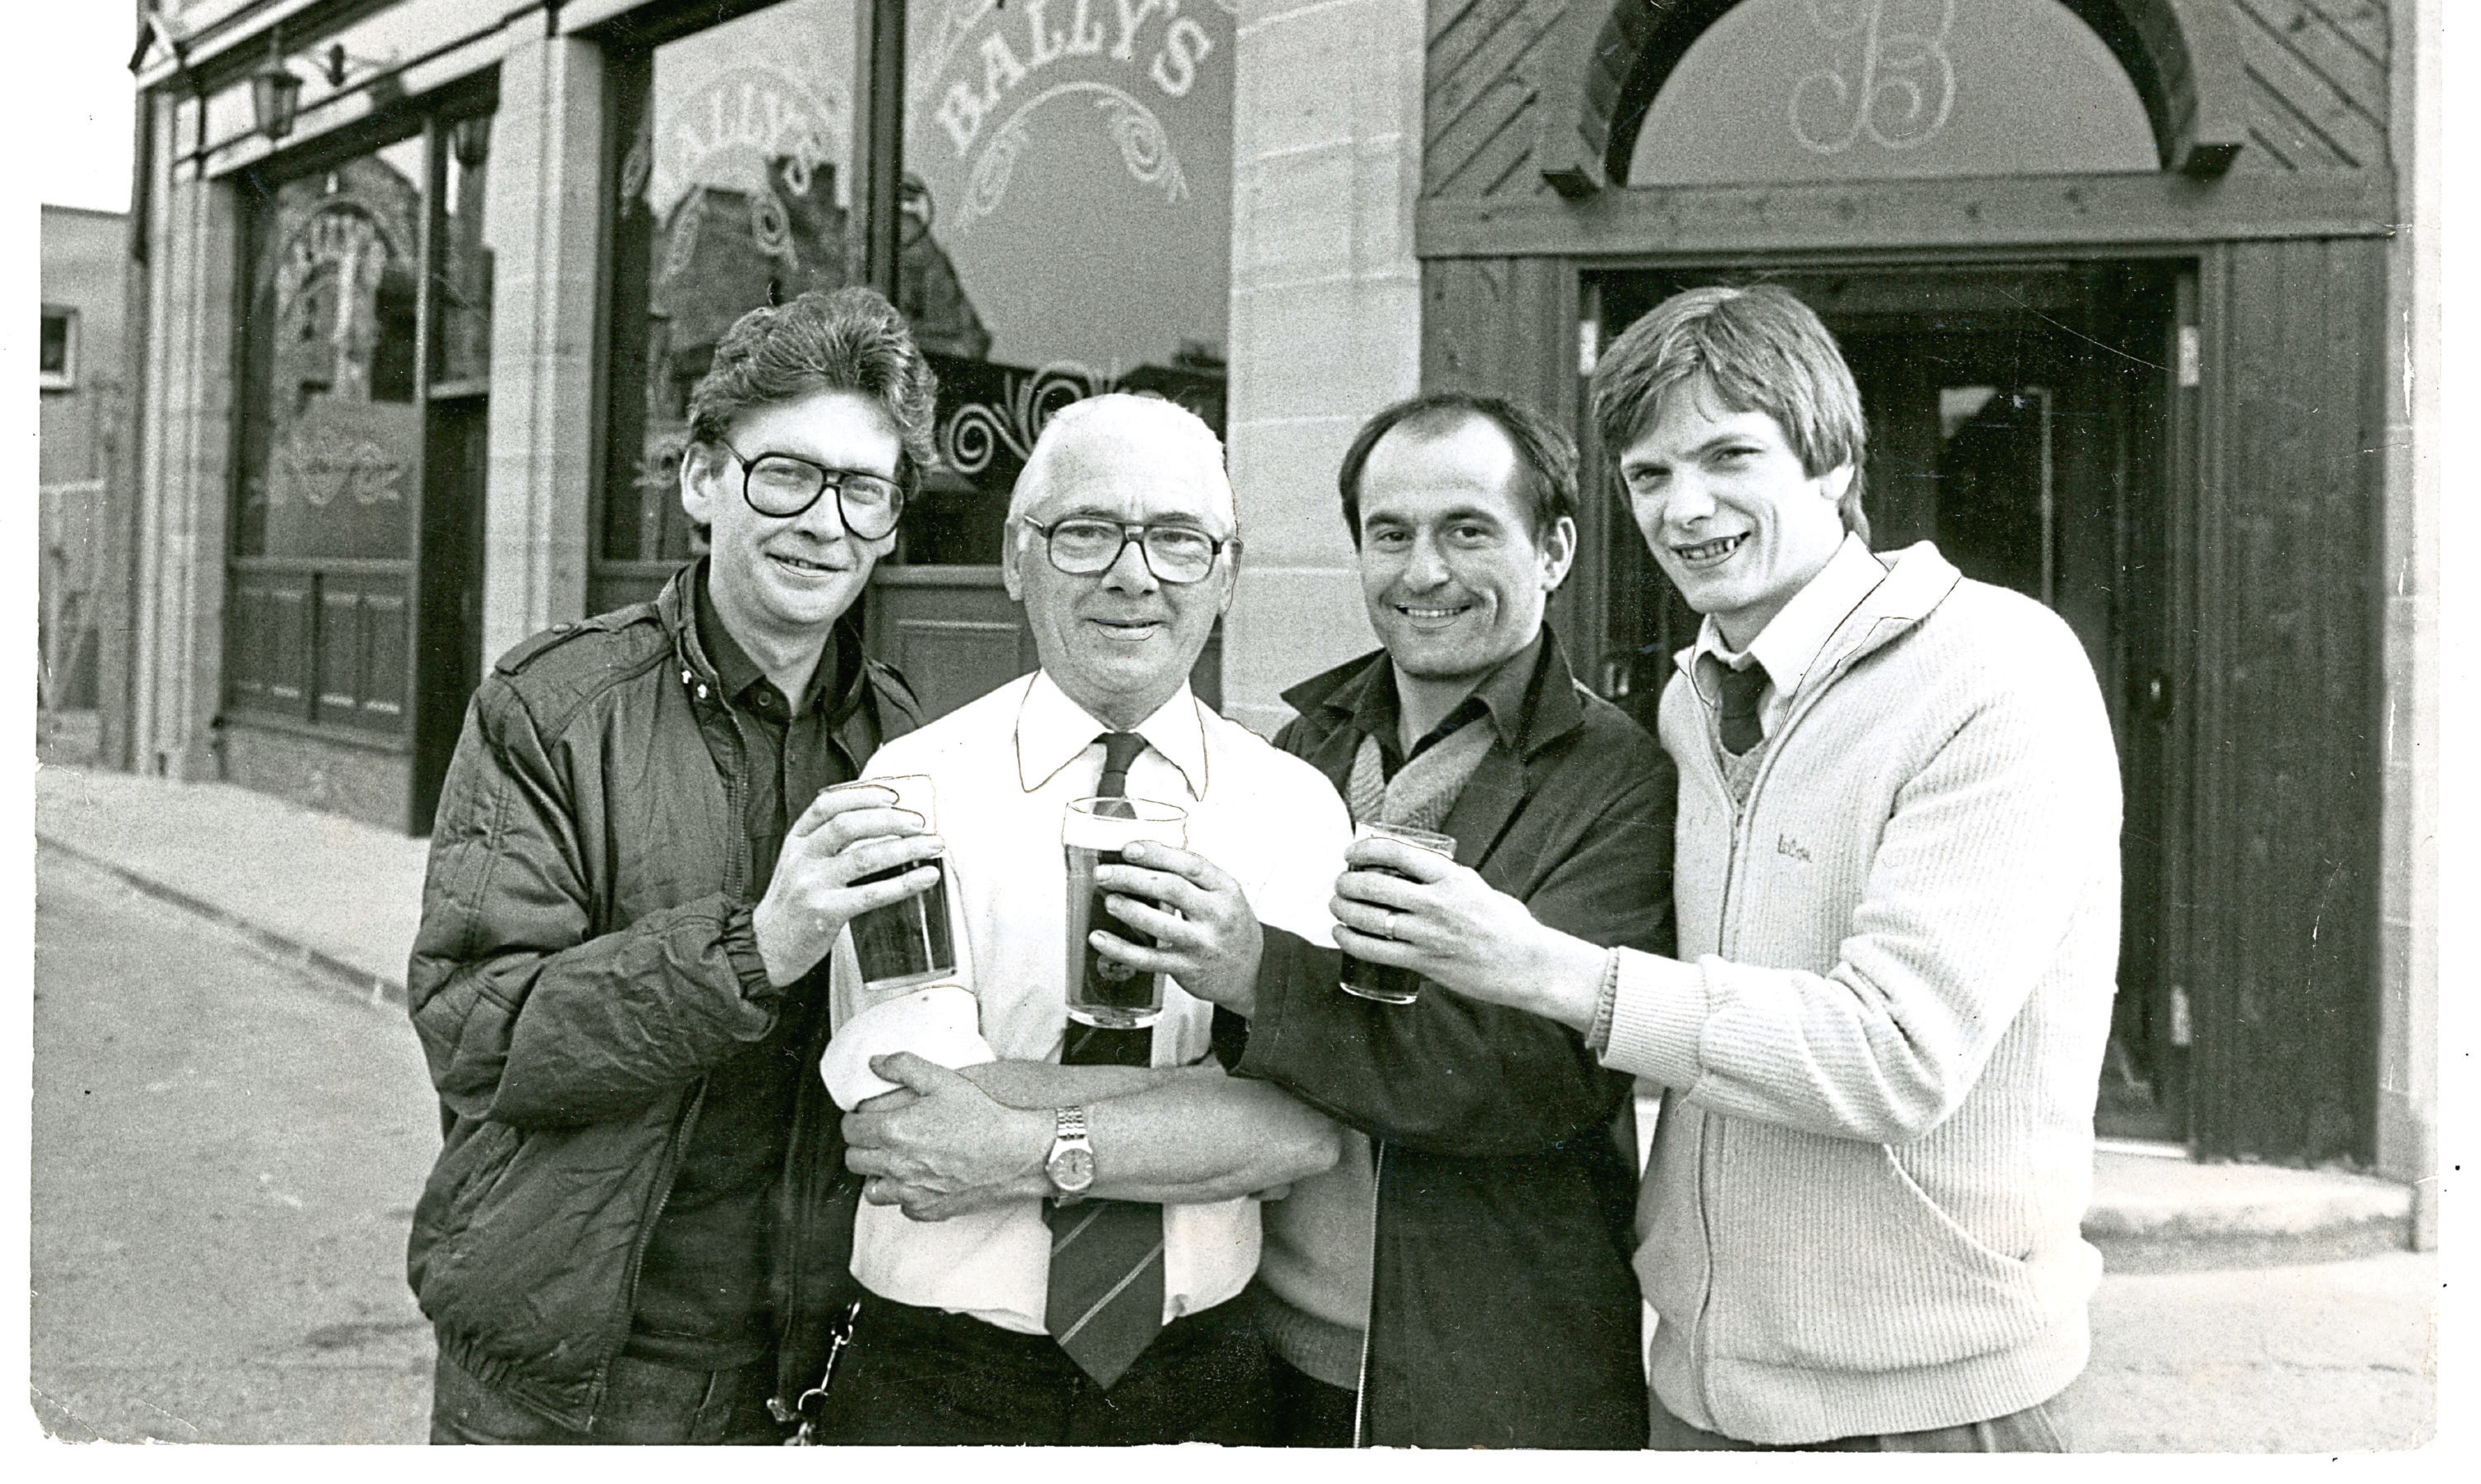 Back in the Day - 2 June 2018  (L-R) Bob Palmer, William McKelvie (manager), Joe Wilkinson and John Marshall at the opening of Bally's Bar in Dundee's Westport. H251 1984-05-02 the opening of Bally's Bar in Westoport Dundee (C)DCT